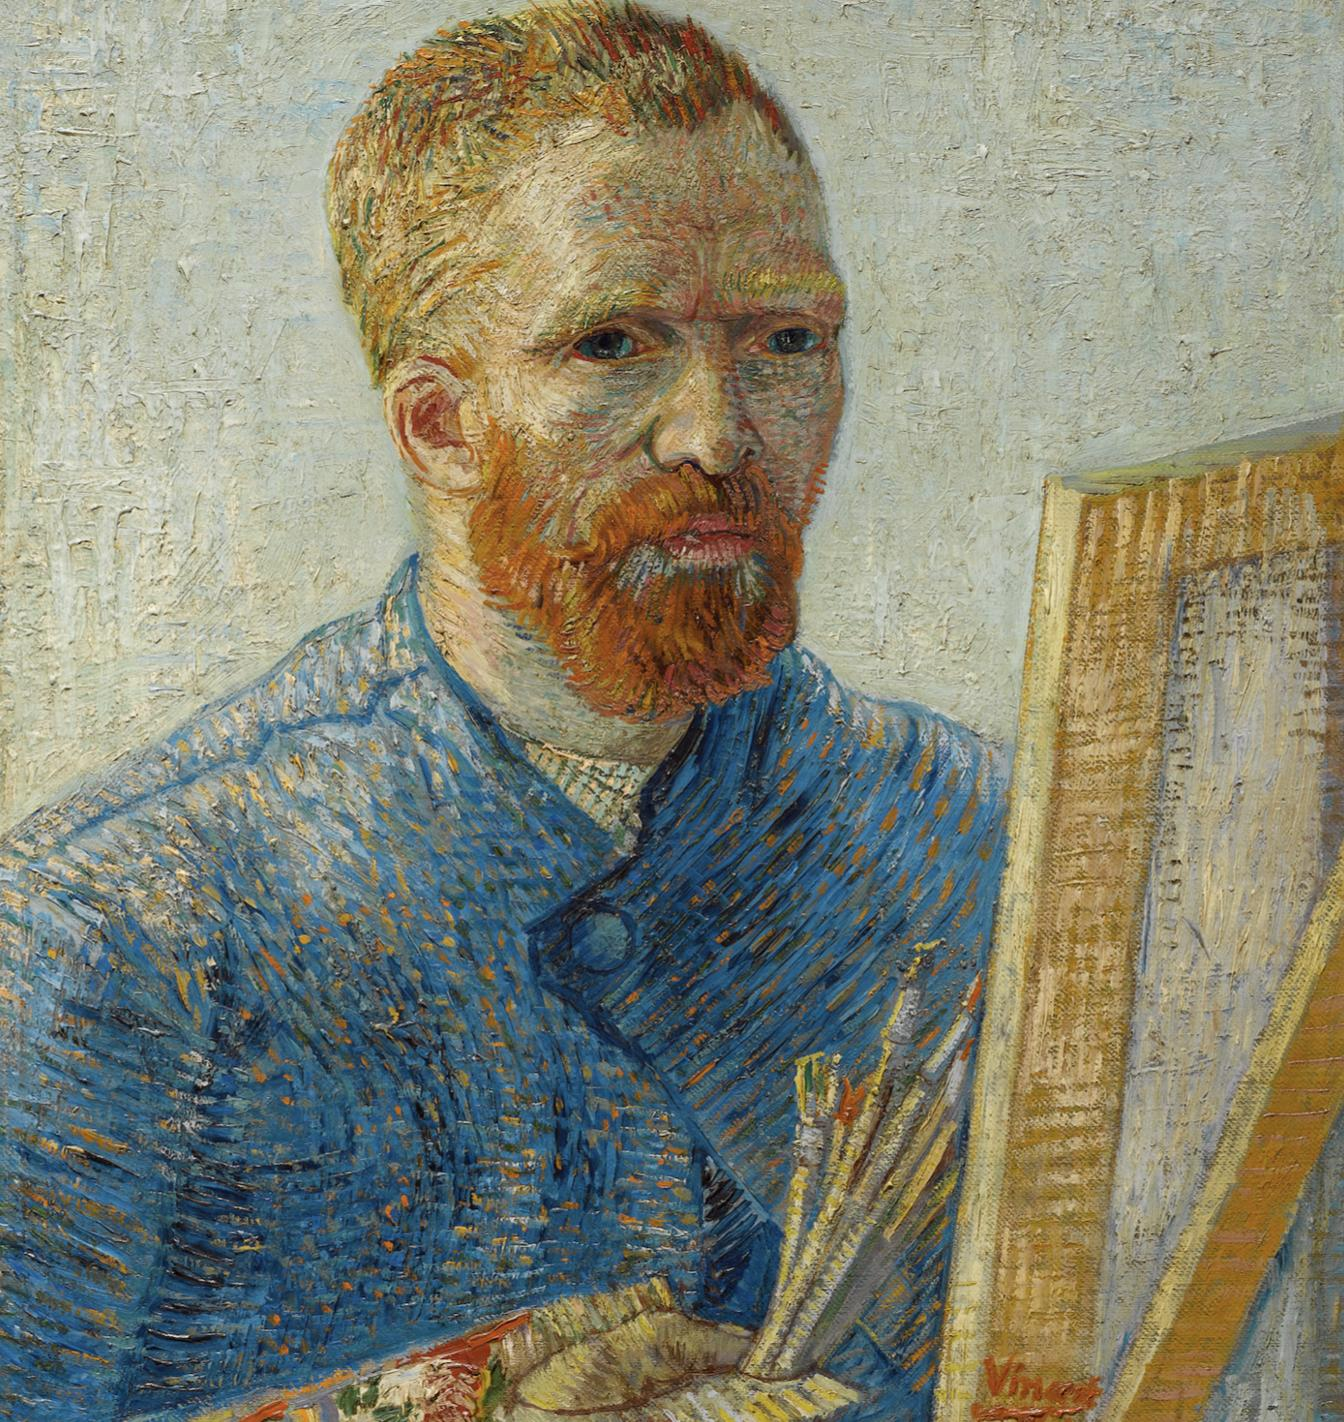 Vincent van Gogh: To do good work, one must eat well, be well housed, have one's fling from time to tim...